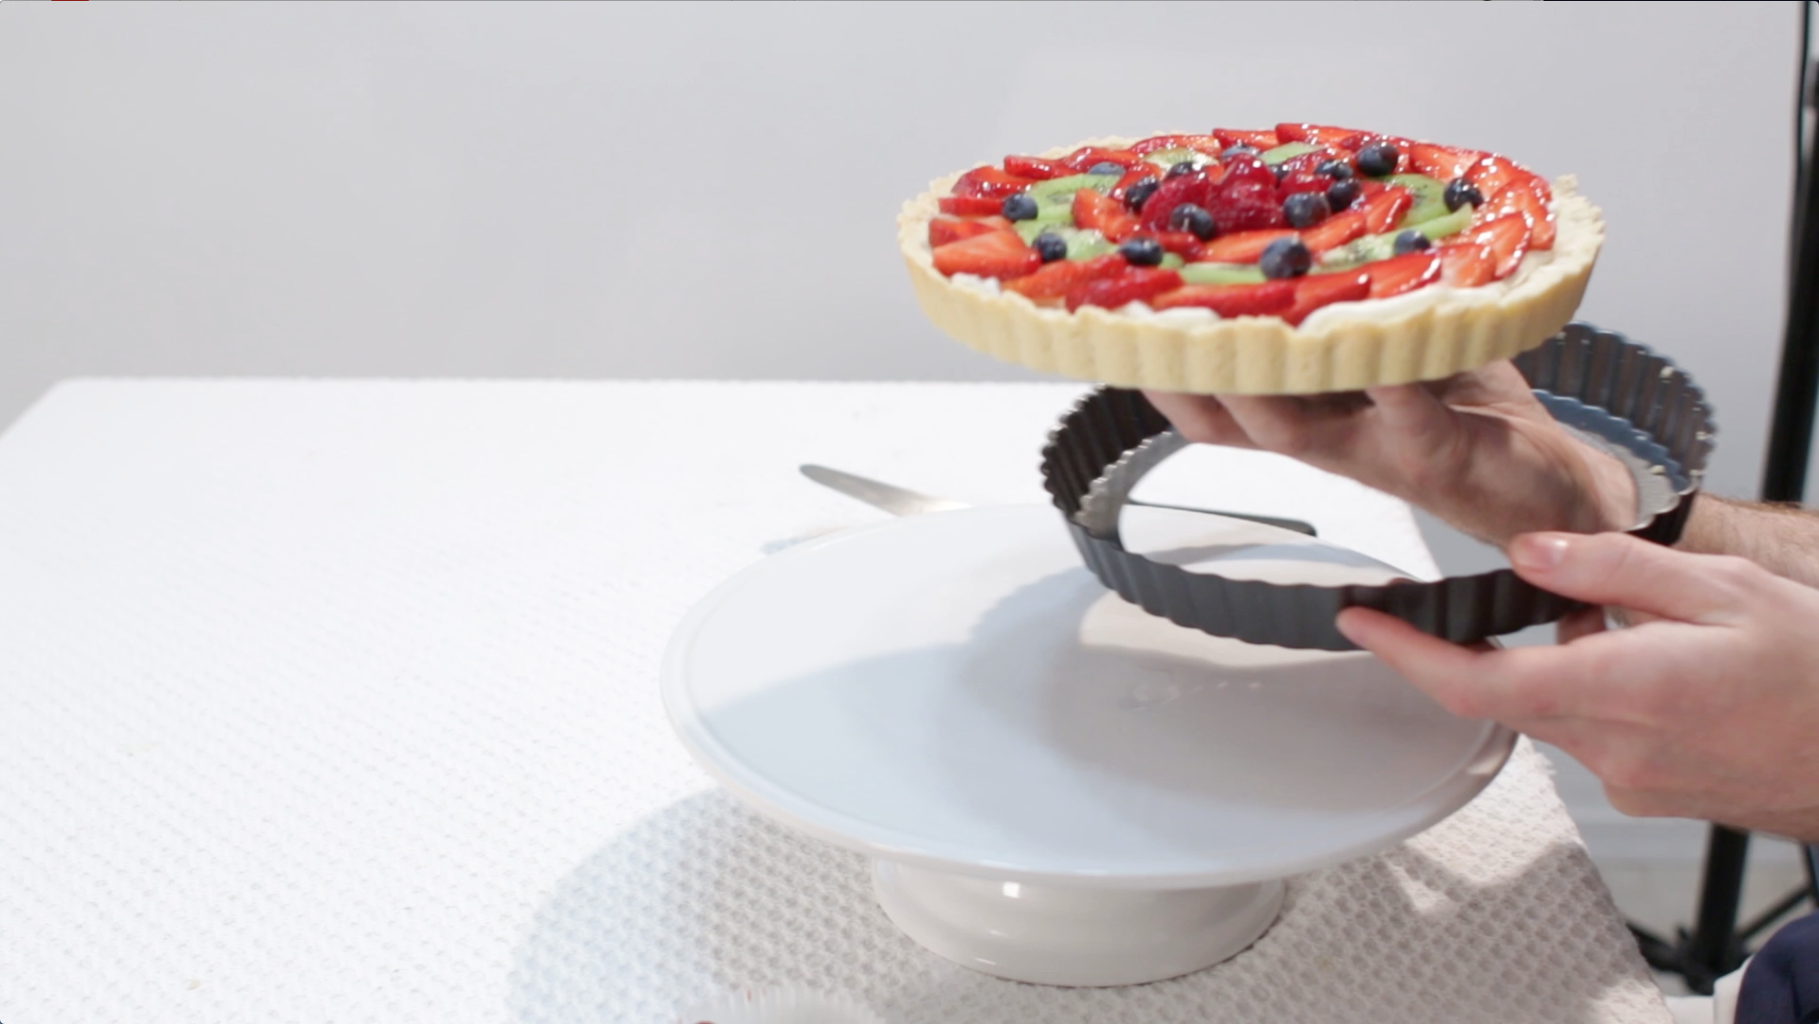 Remove the Tart From the Pan